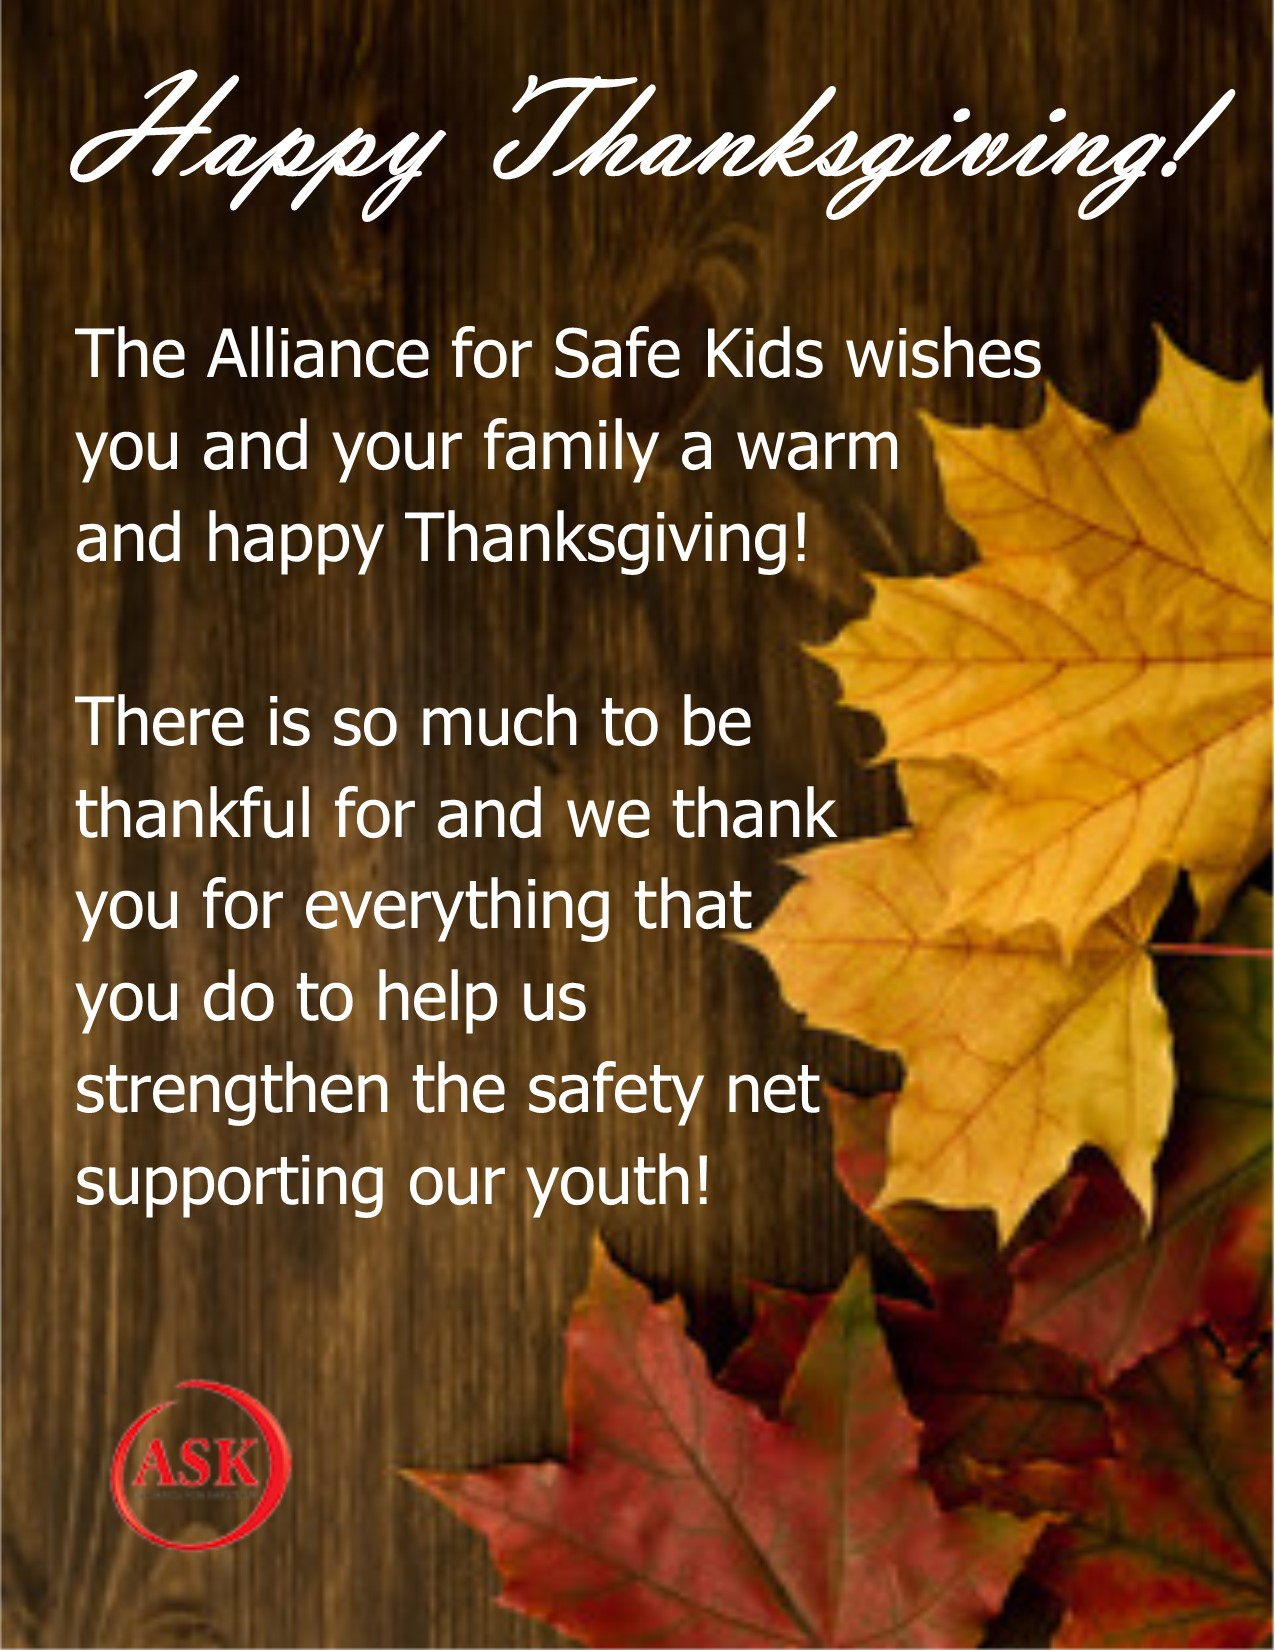 happy thanksgiving alliance for safe kids